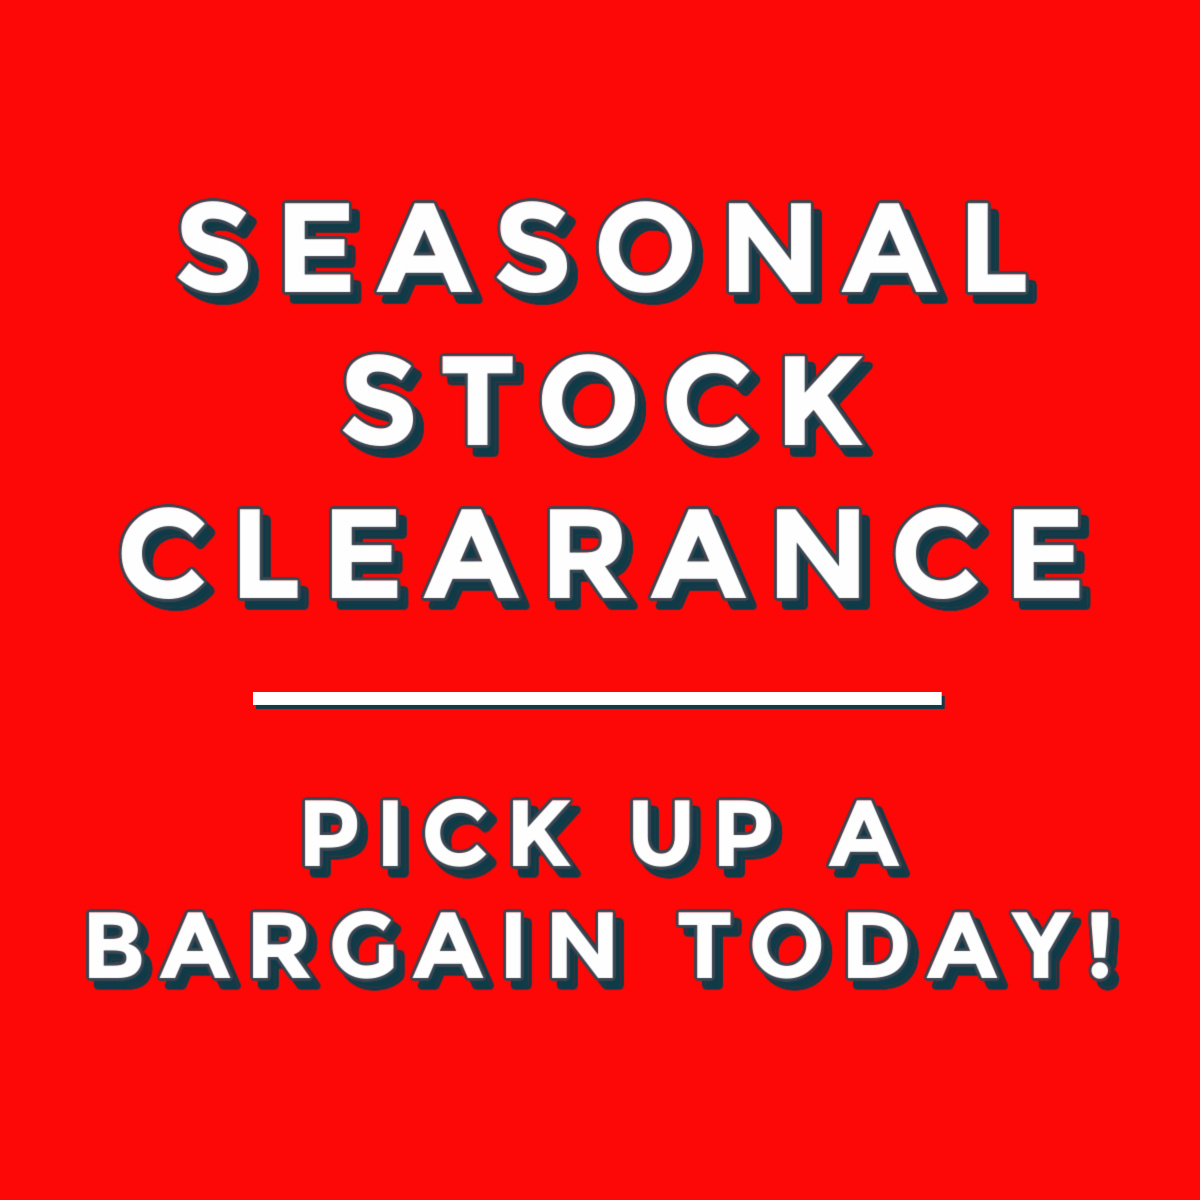 Seasonal Stock Clearance